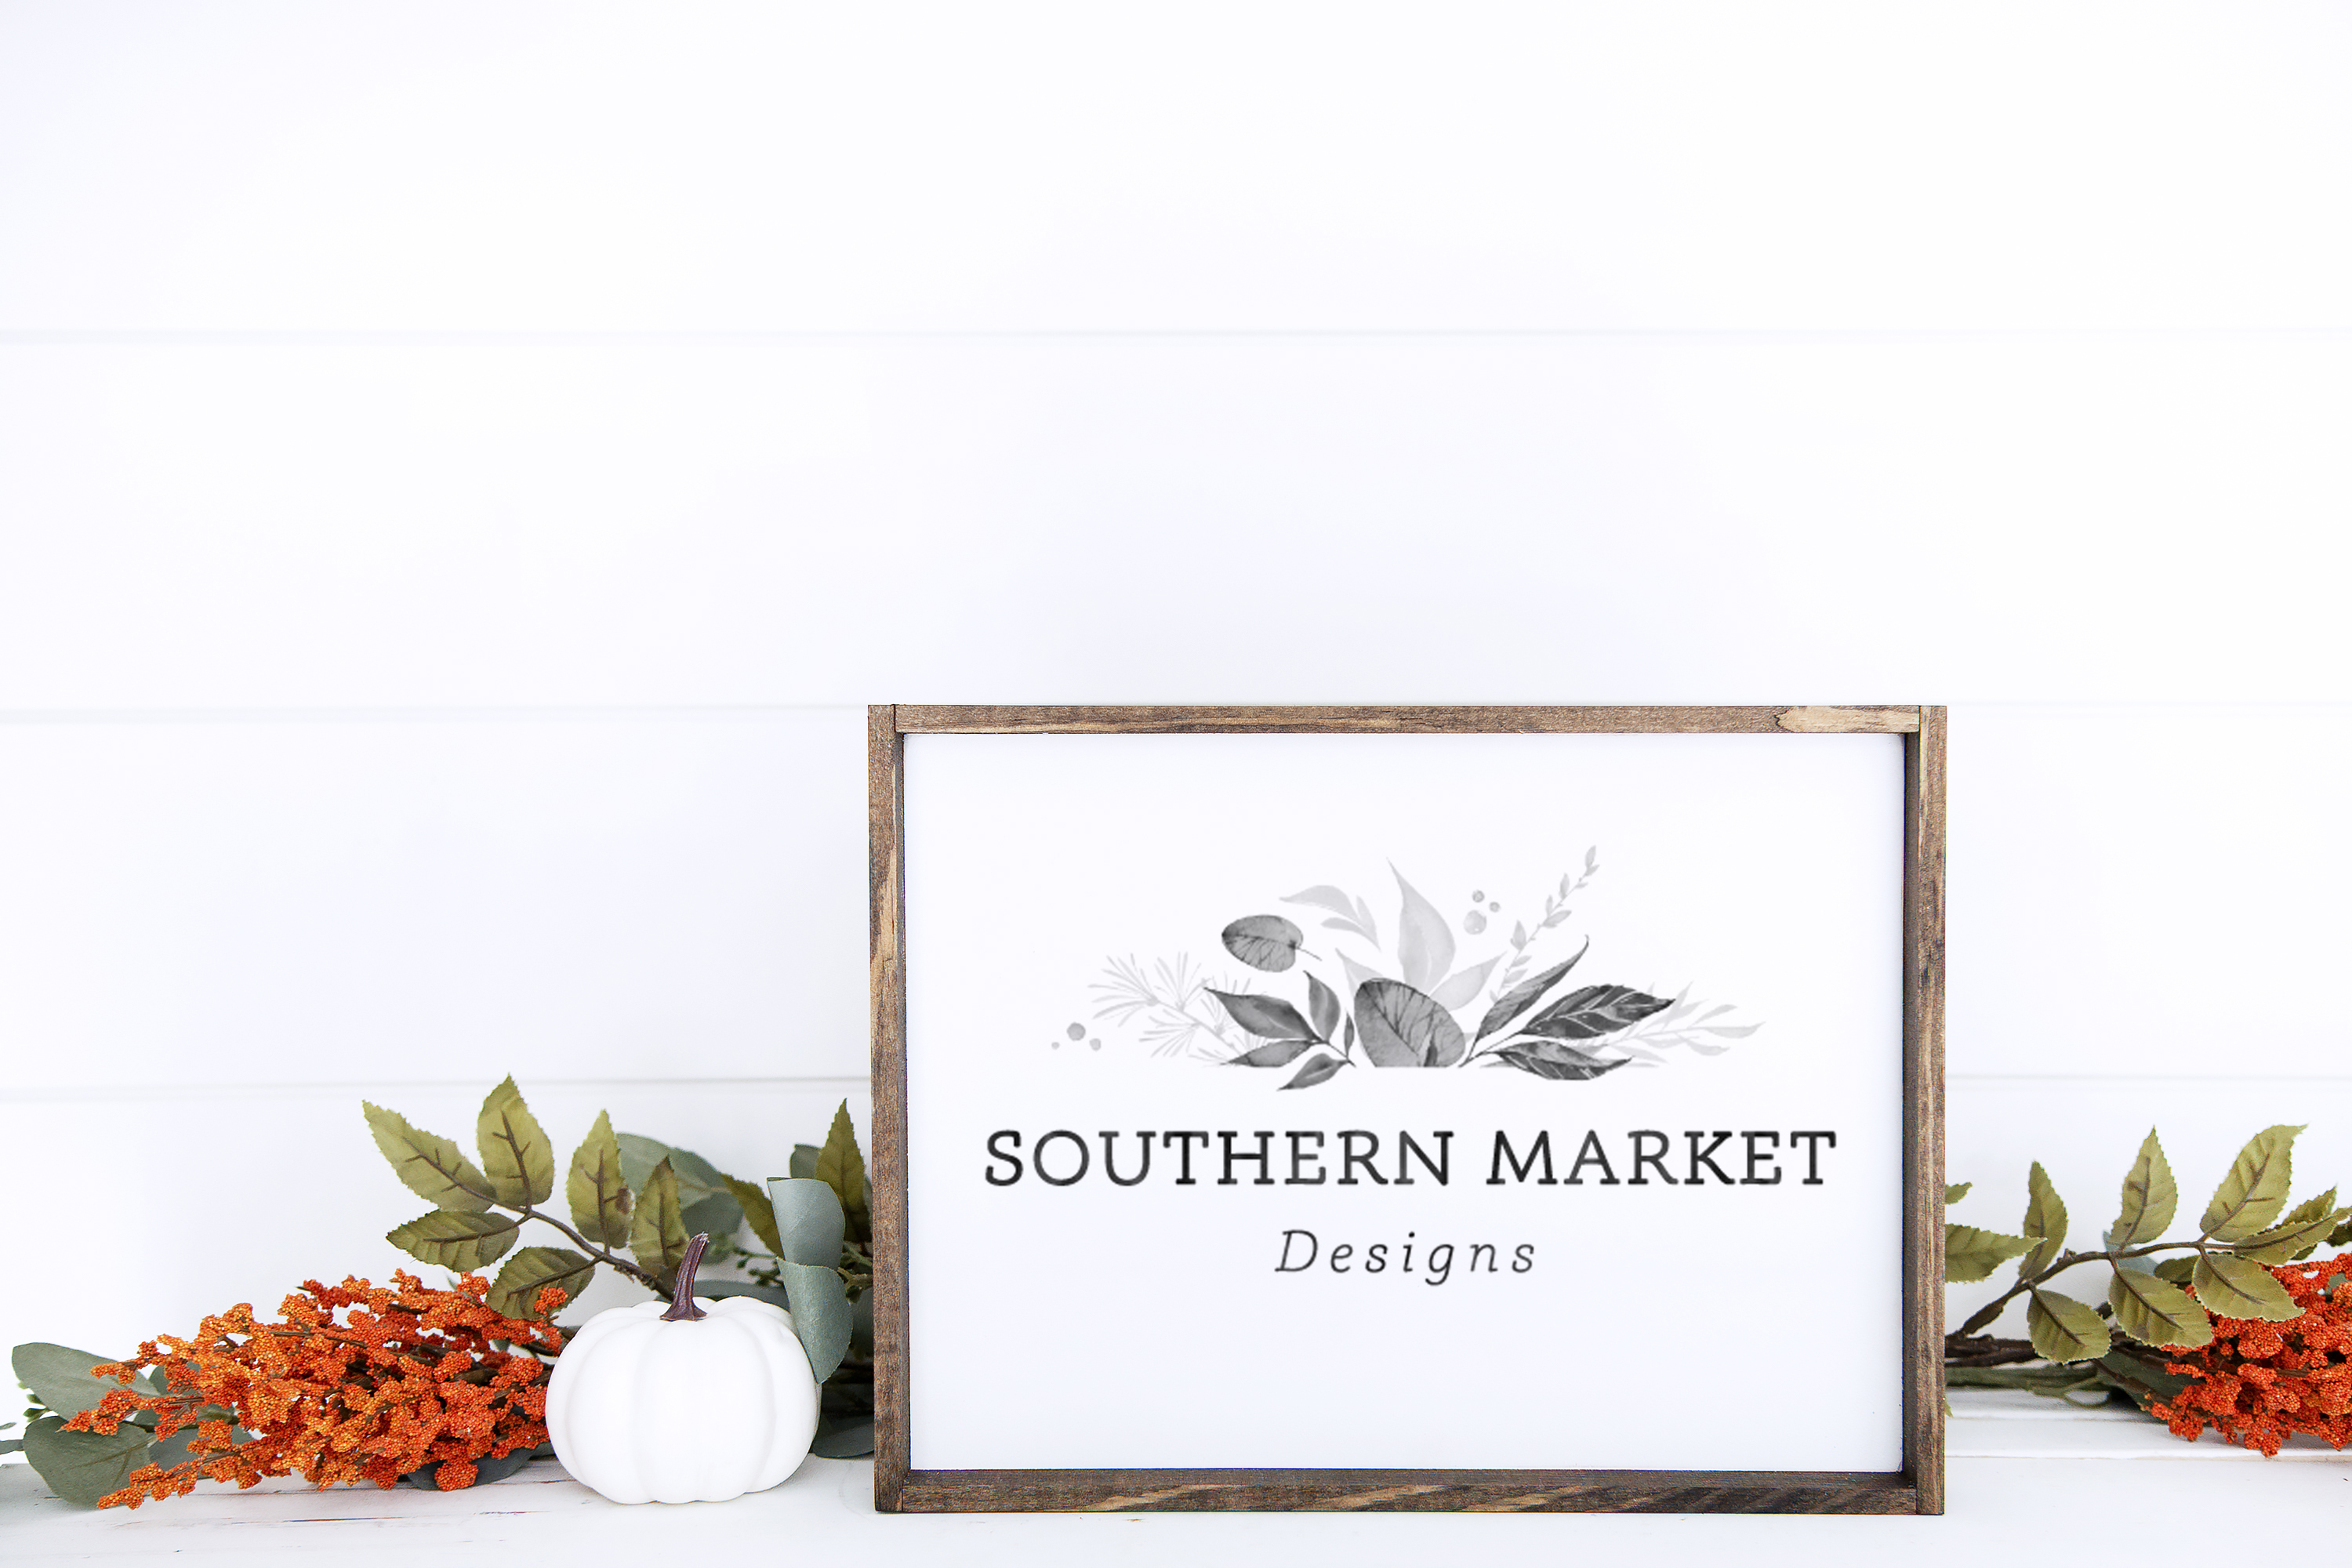 Fall Stained 9x12 Wood Sign Mock Up Stock Photo example image 1